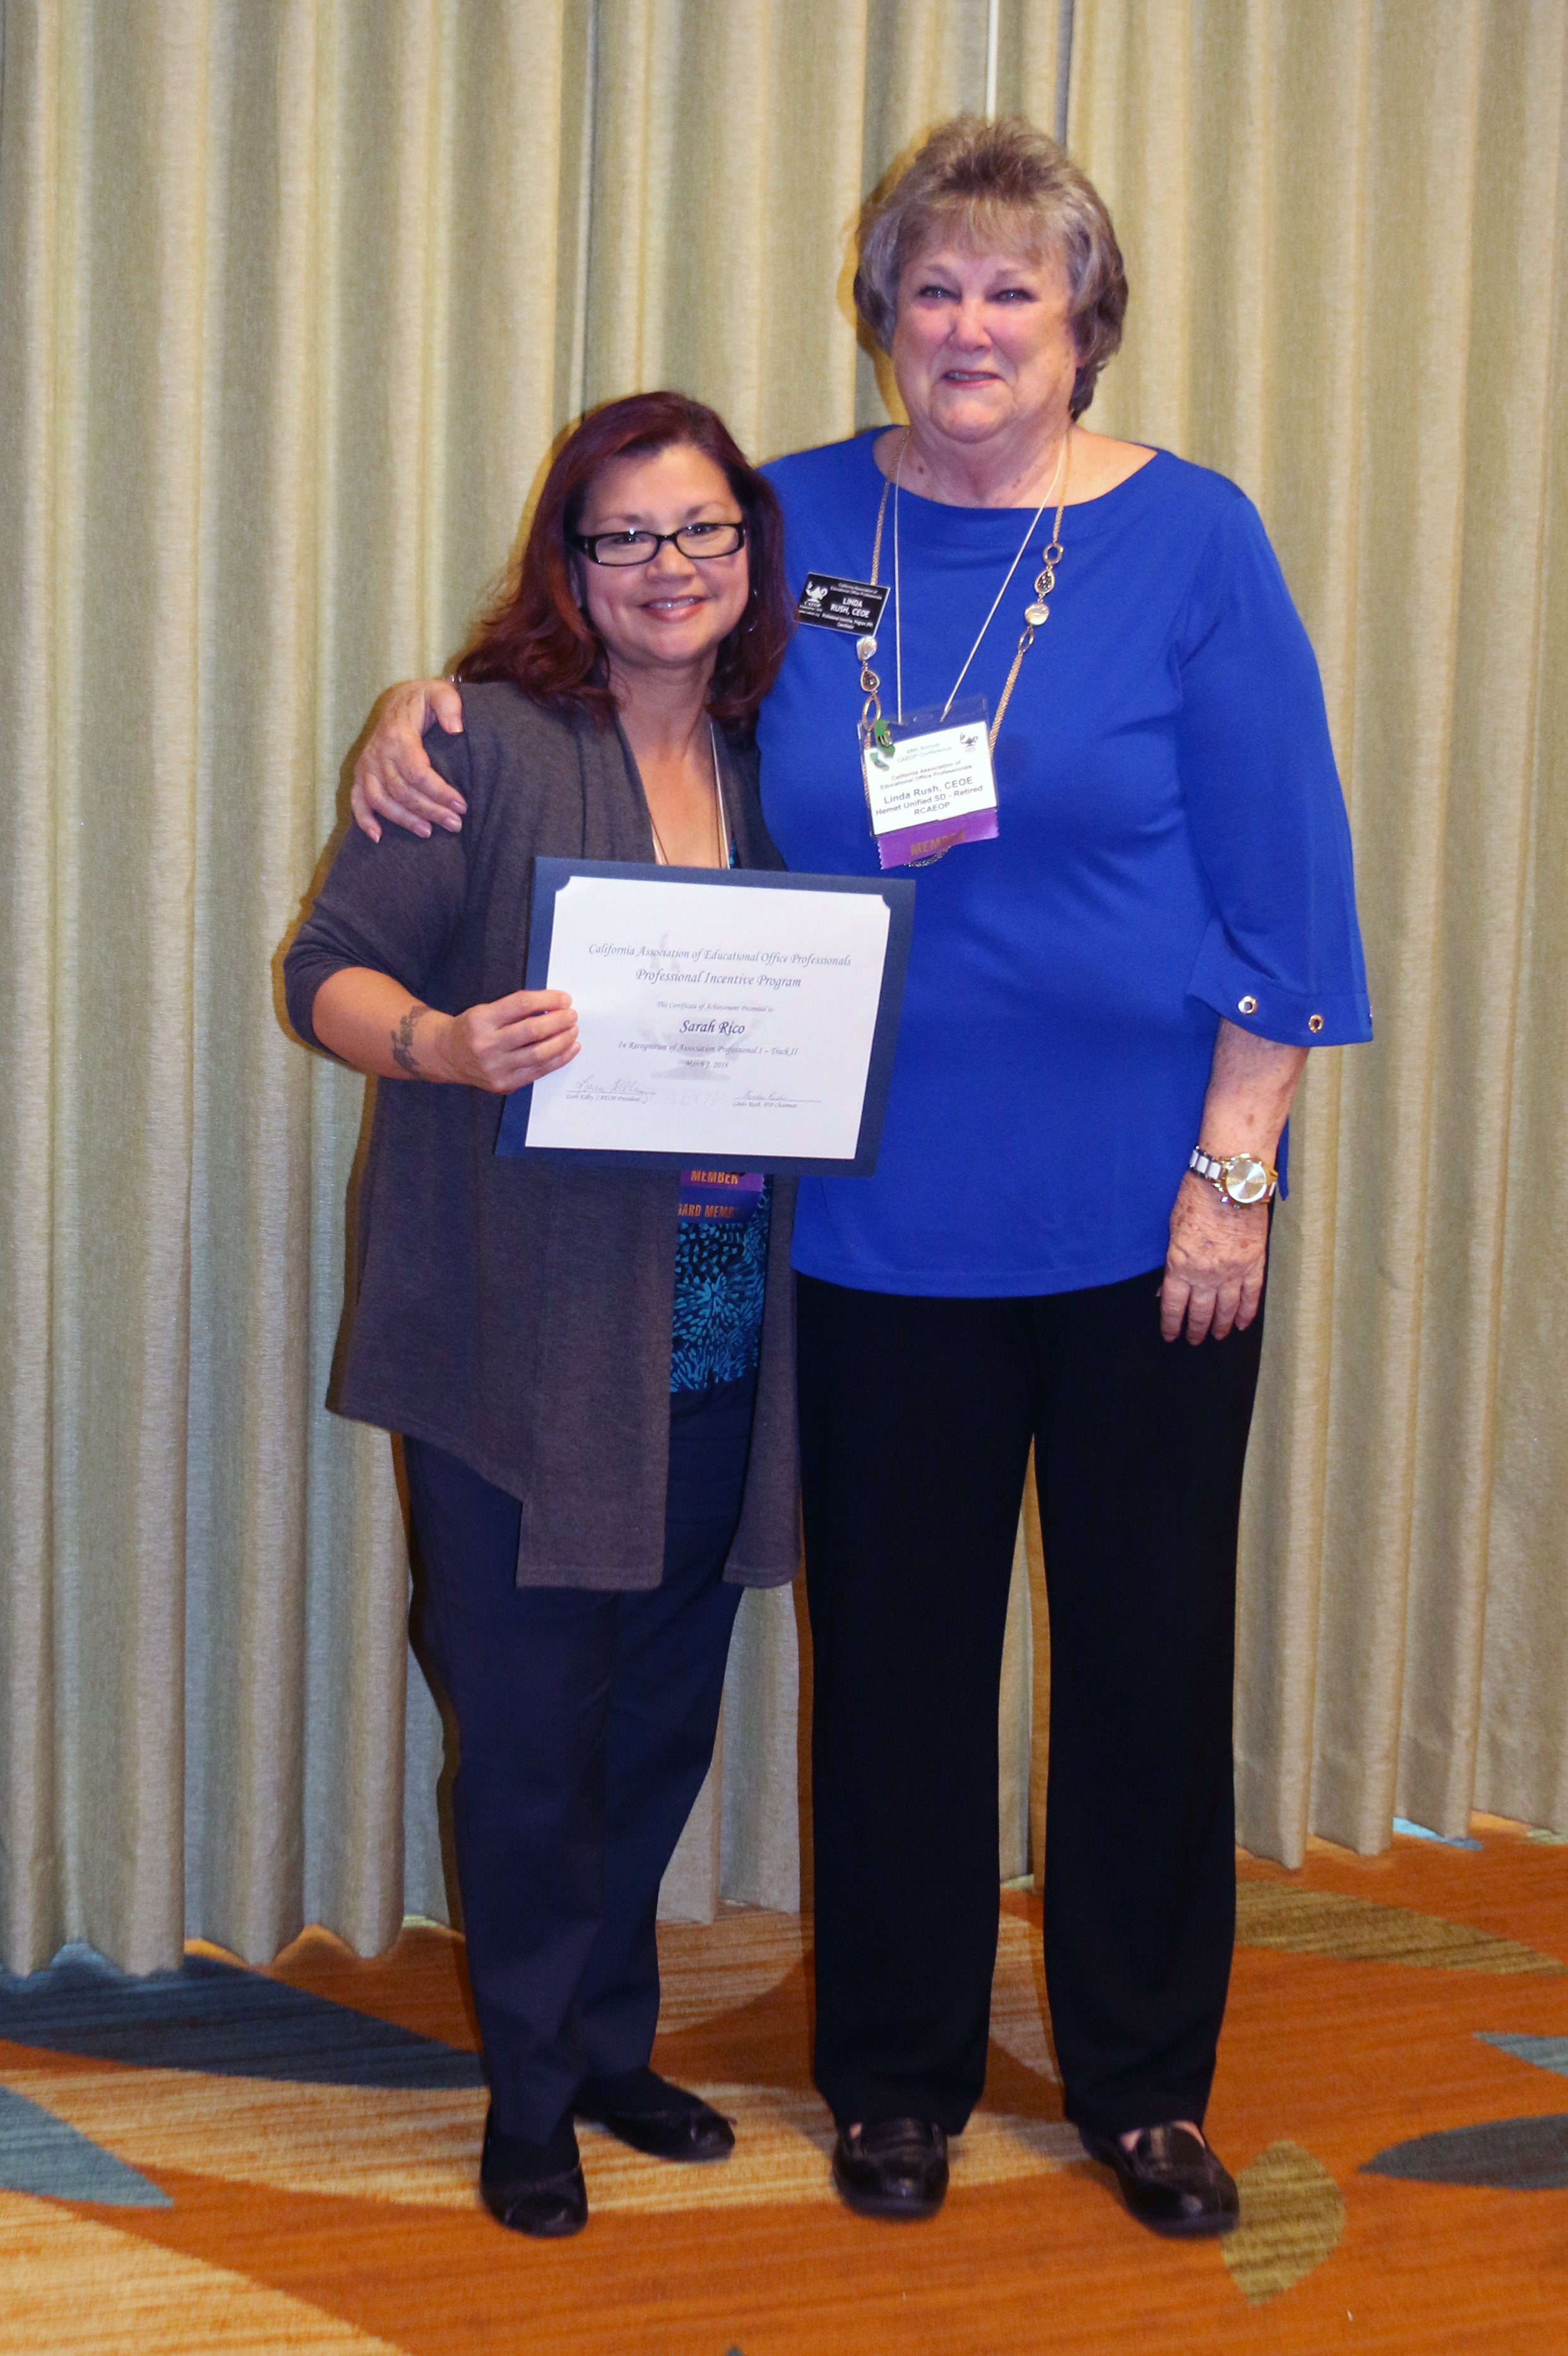 - Congratulations to Sarah Rico on earning your CAEOP Professional Incentive Program Associate Professional I, Track II certification!Thank you, Linda Rush, for your continuous inspiration and setting an example for all educational office professionals.